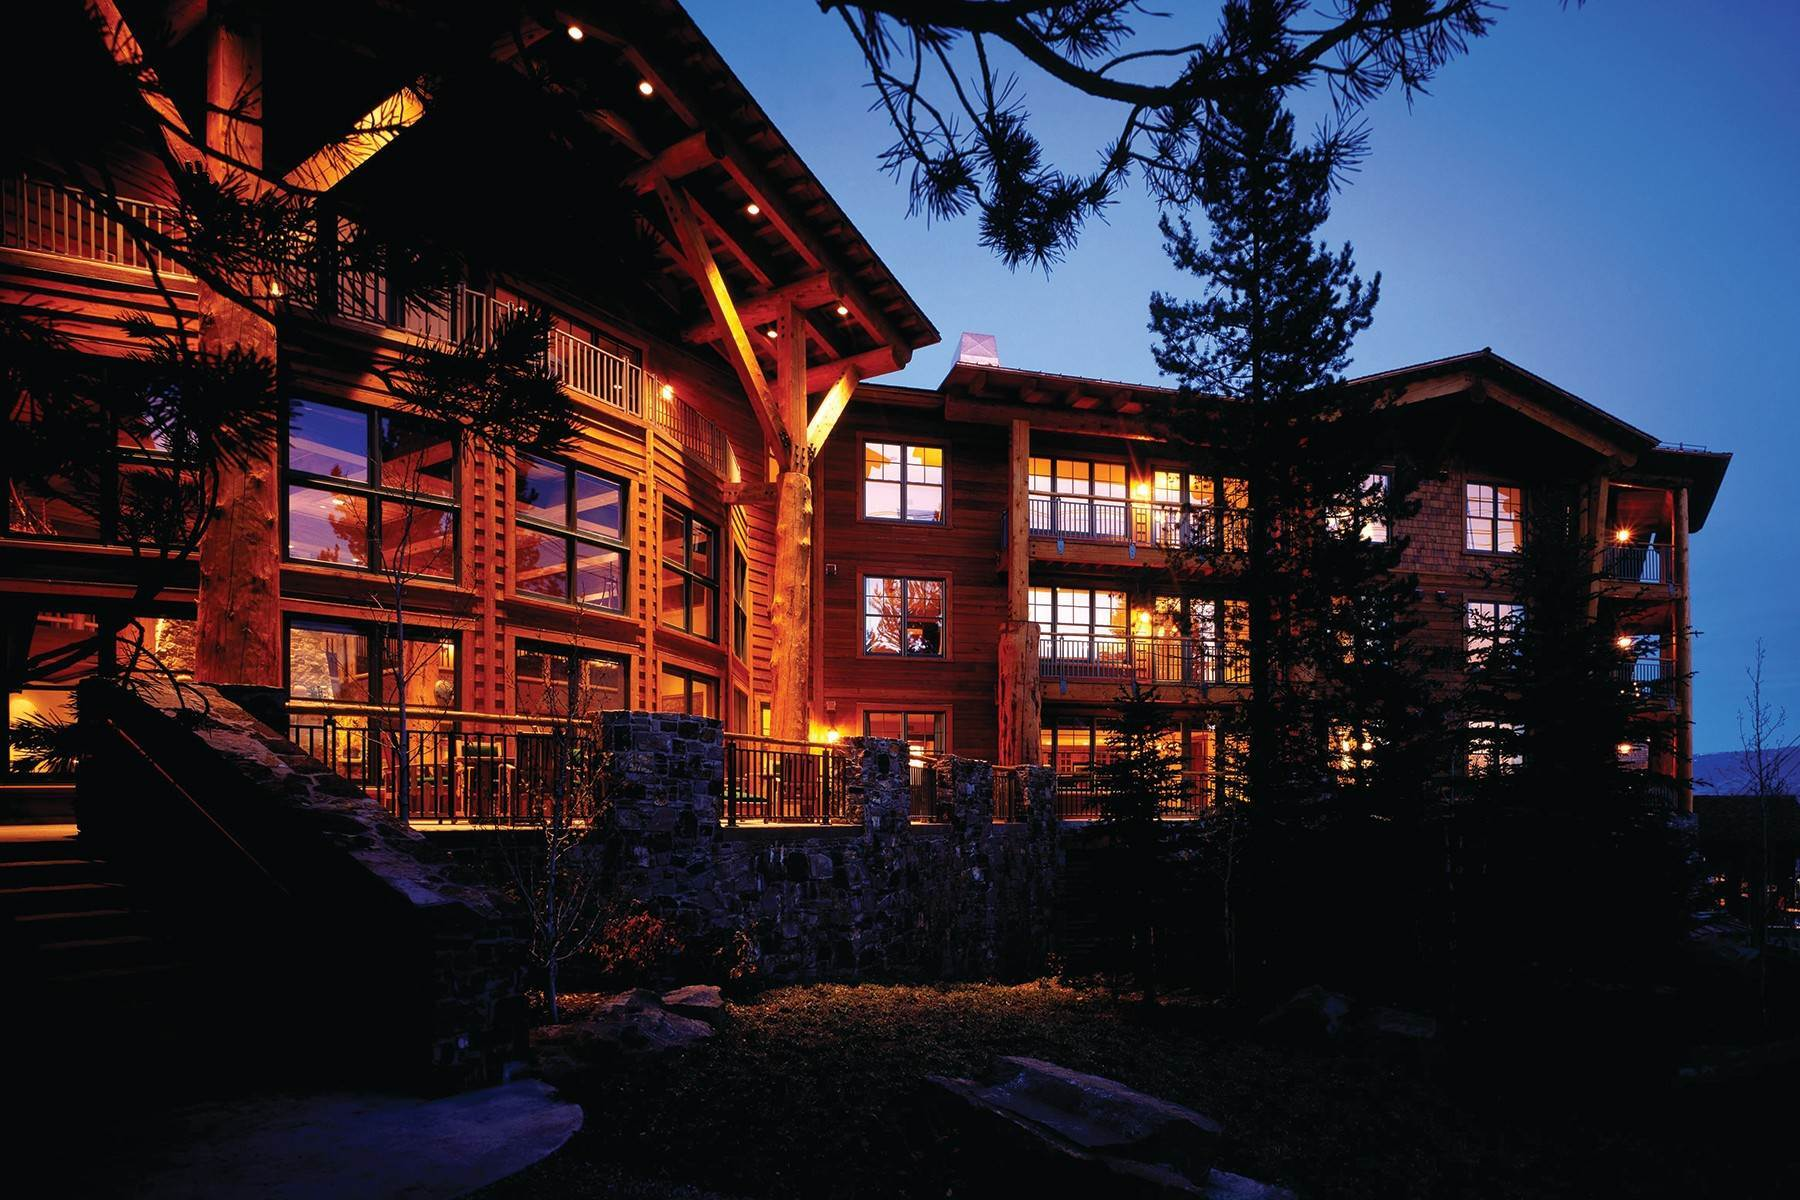 fractional ownership prop for Sale at 3340 W Cody Ln, #301 & 404 Teton Village, Wyoming 83025 United States